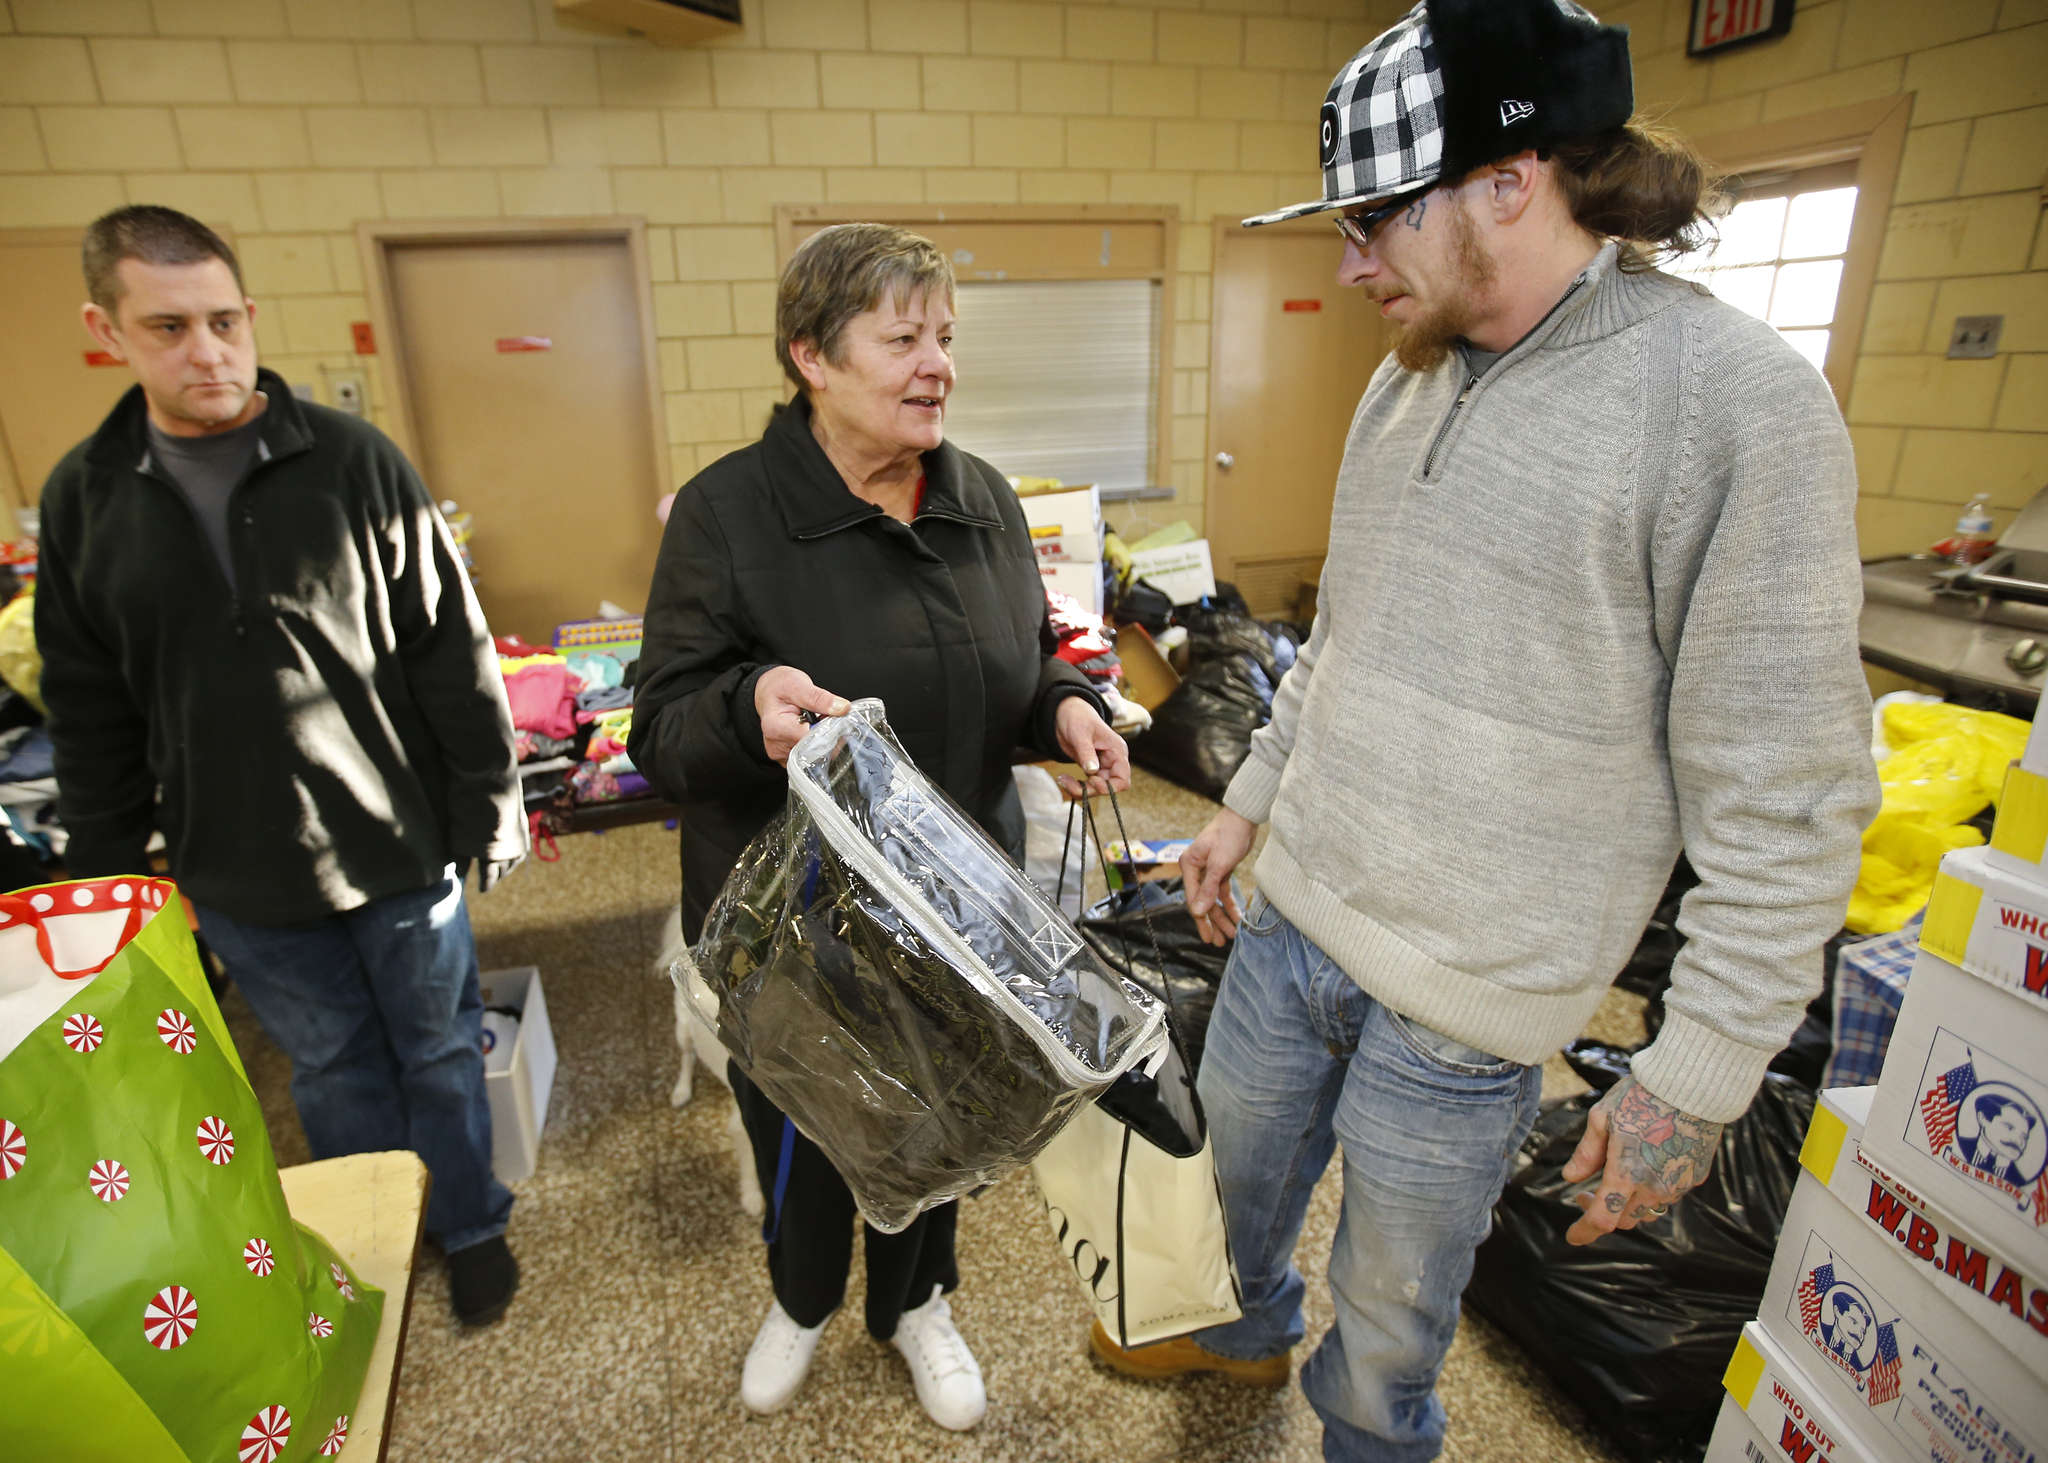 Christine Dragon , who was burned out of her Burlington City home, received enough help to make her own donation. She was at the drop-off point with volunteers Michael Lloyd (left) and Steven Whitfield. MICHAEL BRYANT / Staff Photographer